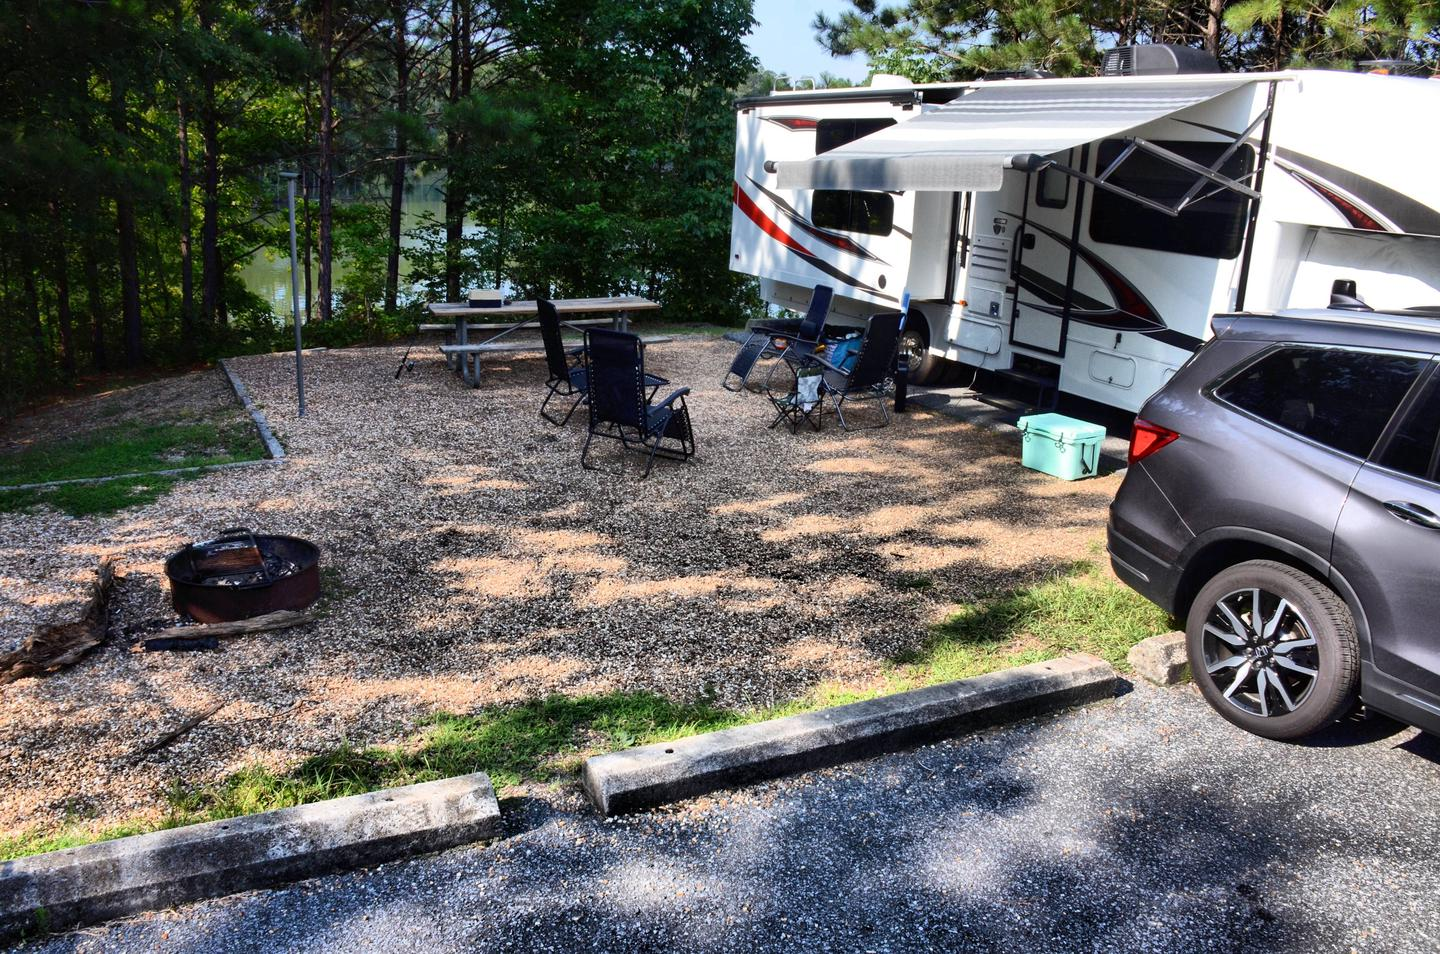 Awning-side clearance, campsite view.Payne Campground, campsite 34.